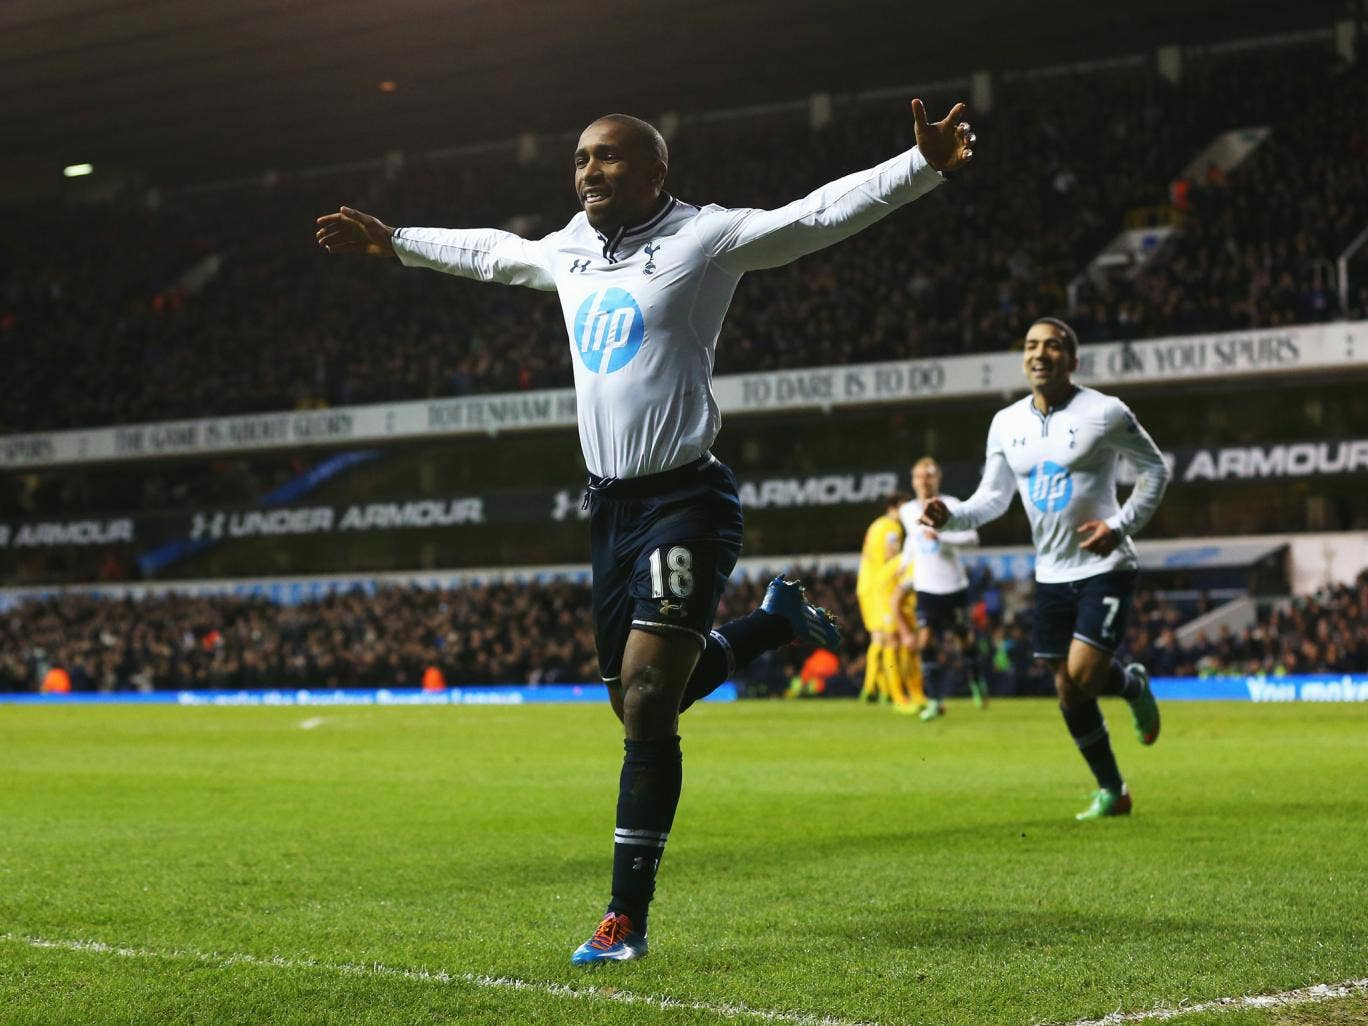 Jermain Defoe celebrates after scoring for Tottenham against Crystal Palace